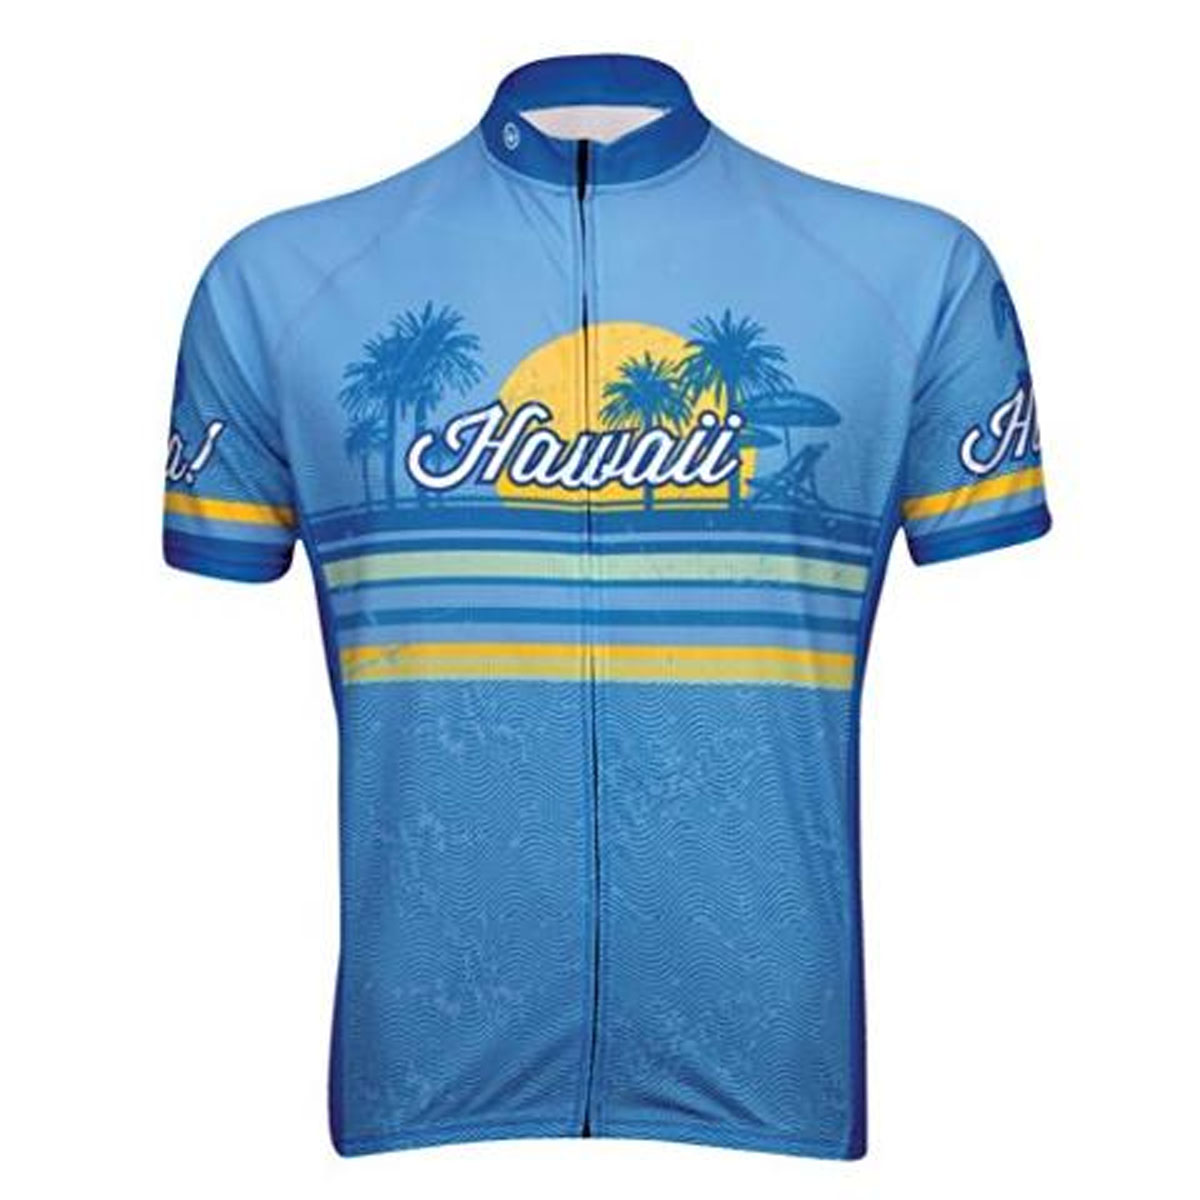 Canari Cyclewear Men's Hawaii Blue Cycling Jersey - 12237